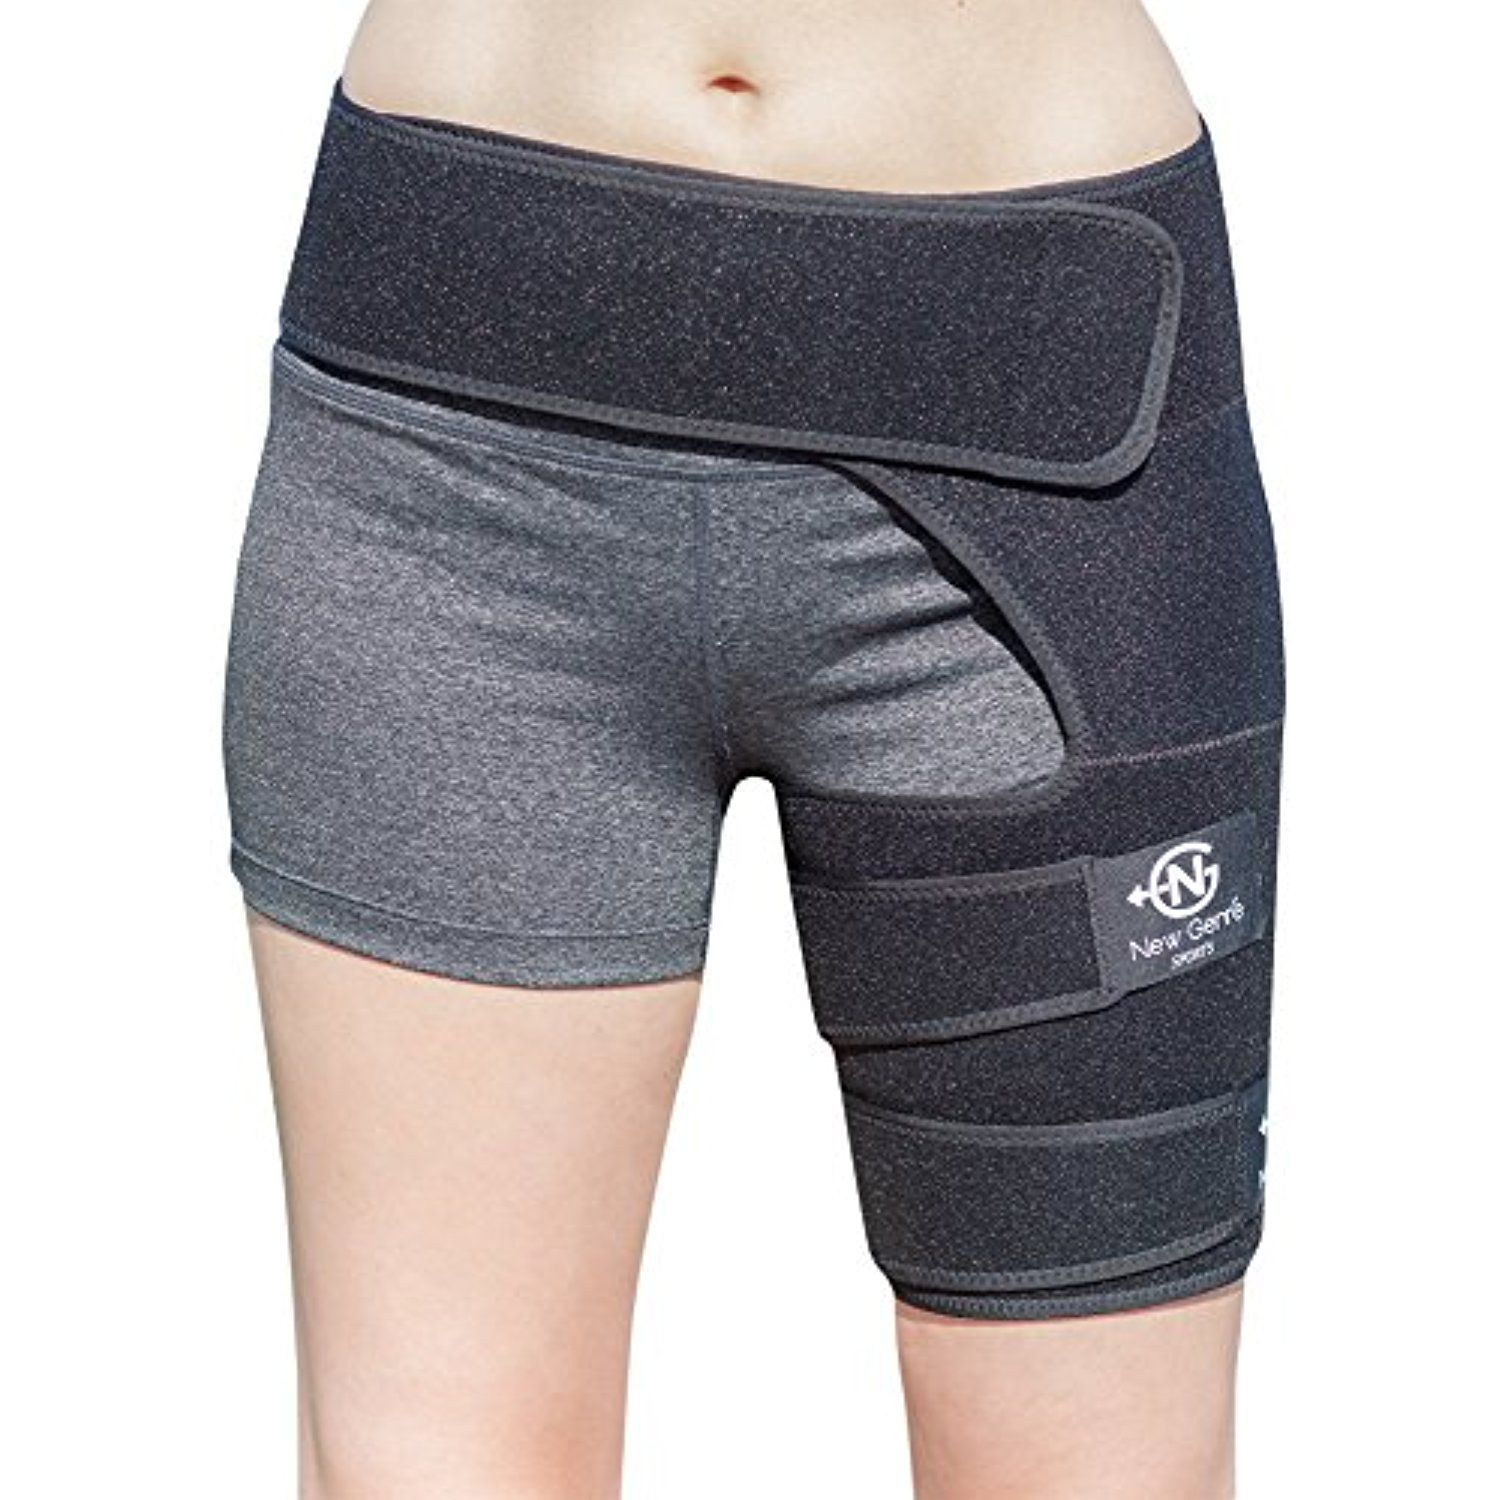 Groin Support Brace by NewGen Sports, Breathable